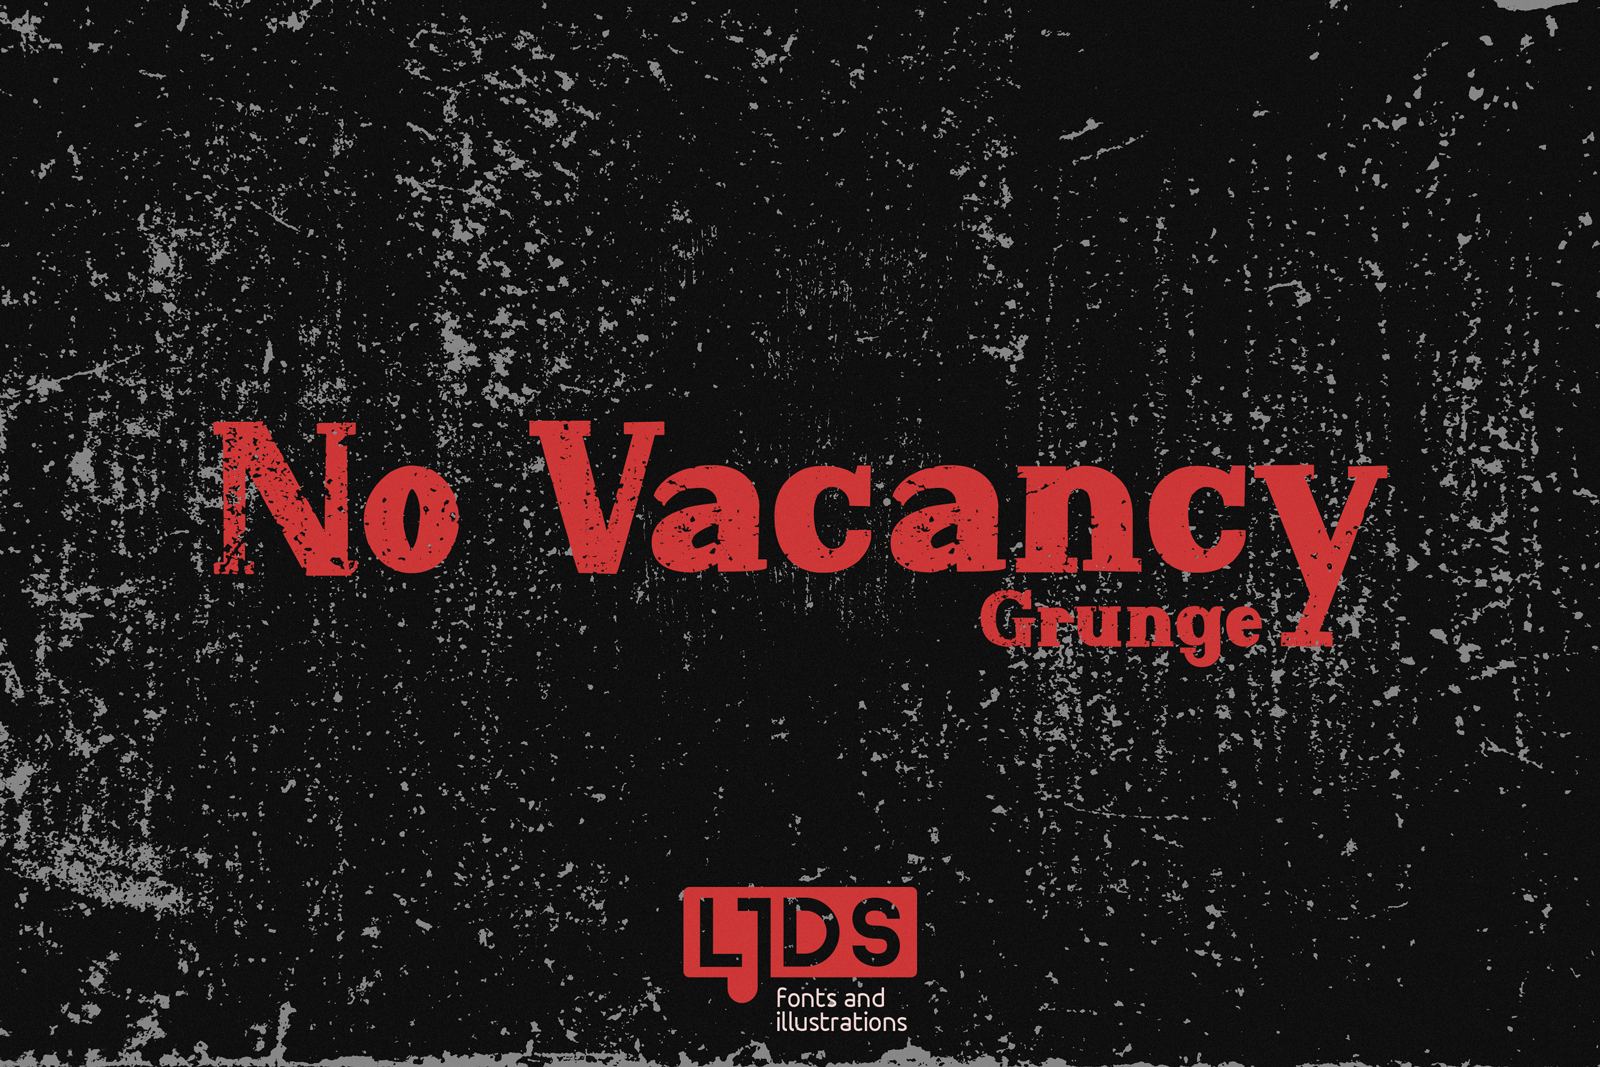 No Vacancy Grunge example image 2